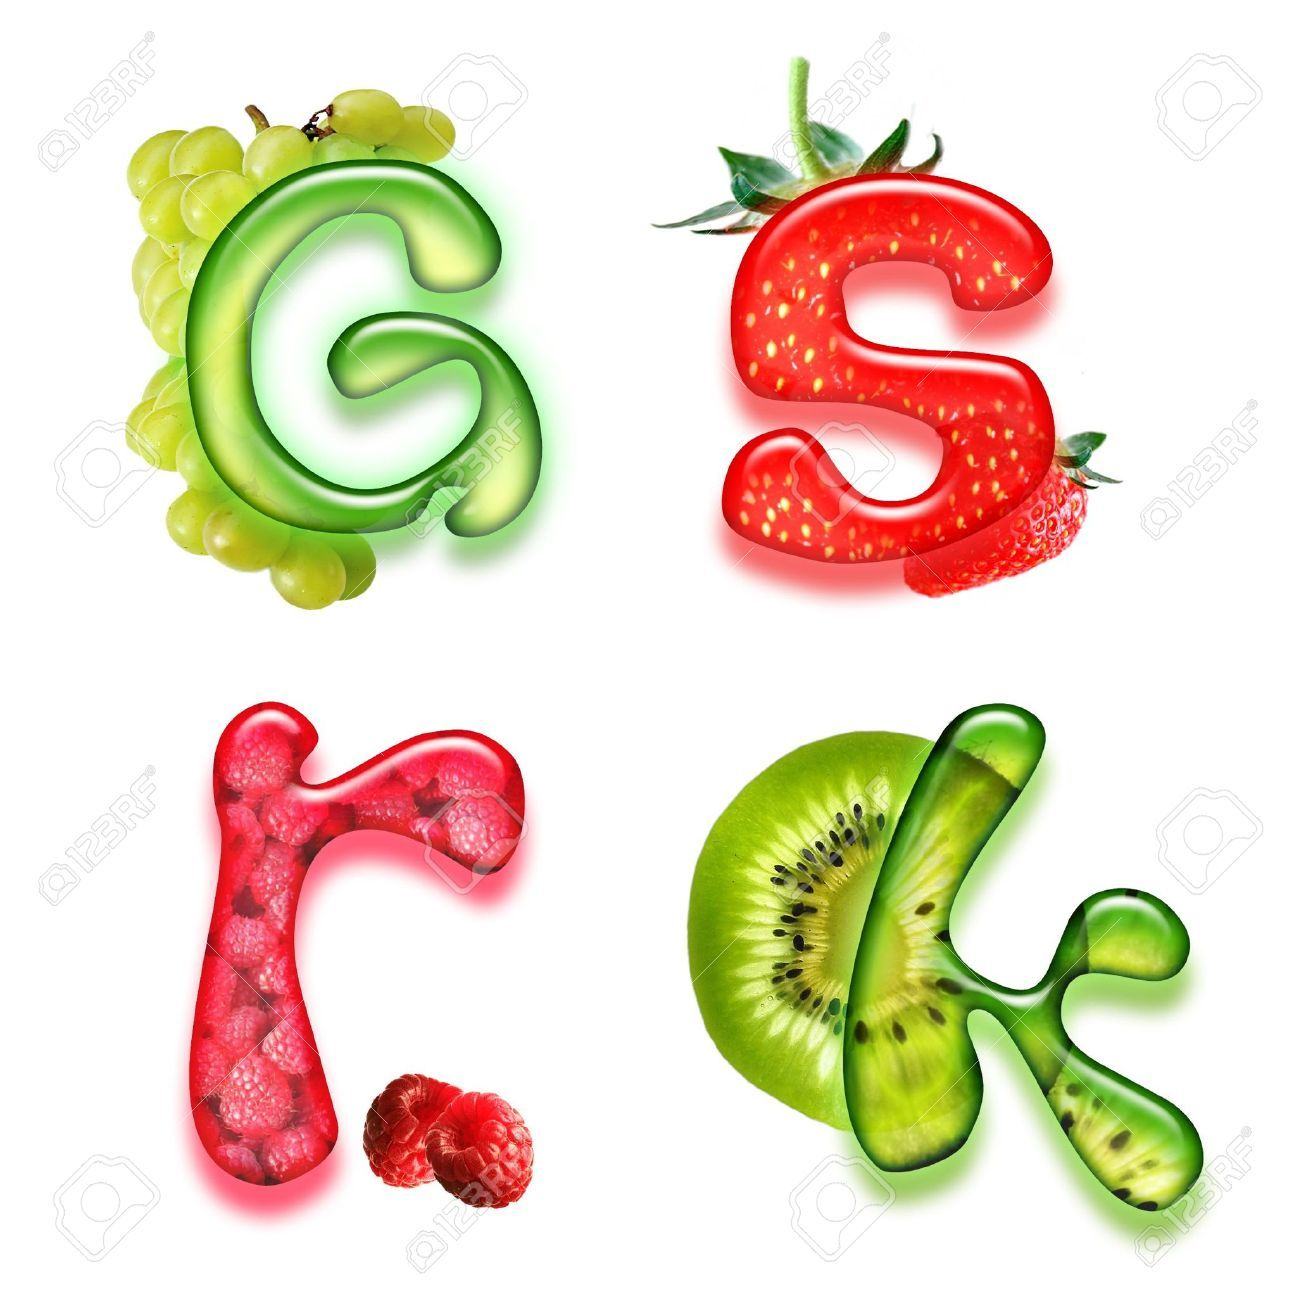 Fruit Letter Styles - Google Search